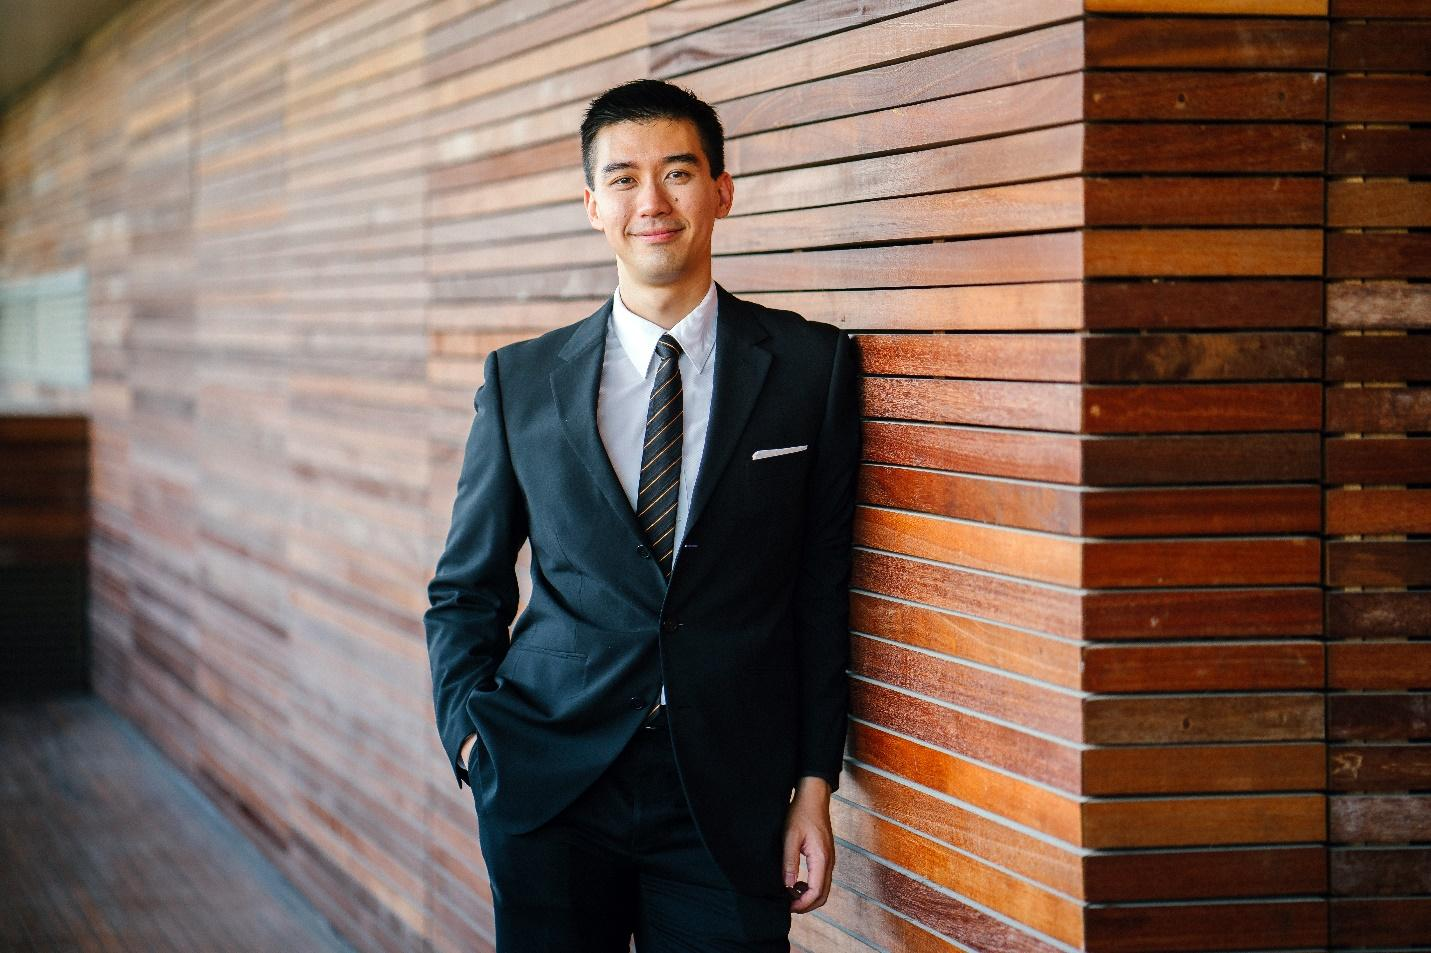 Young professional man smiling at the camera and wearing a black suit leaning on brown wood wall